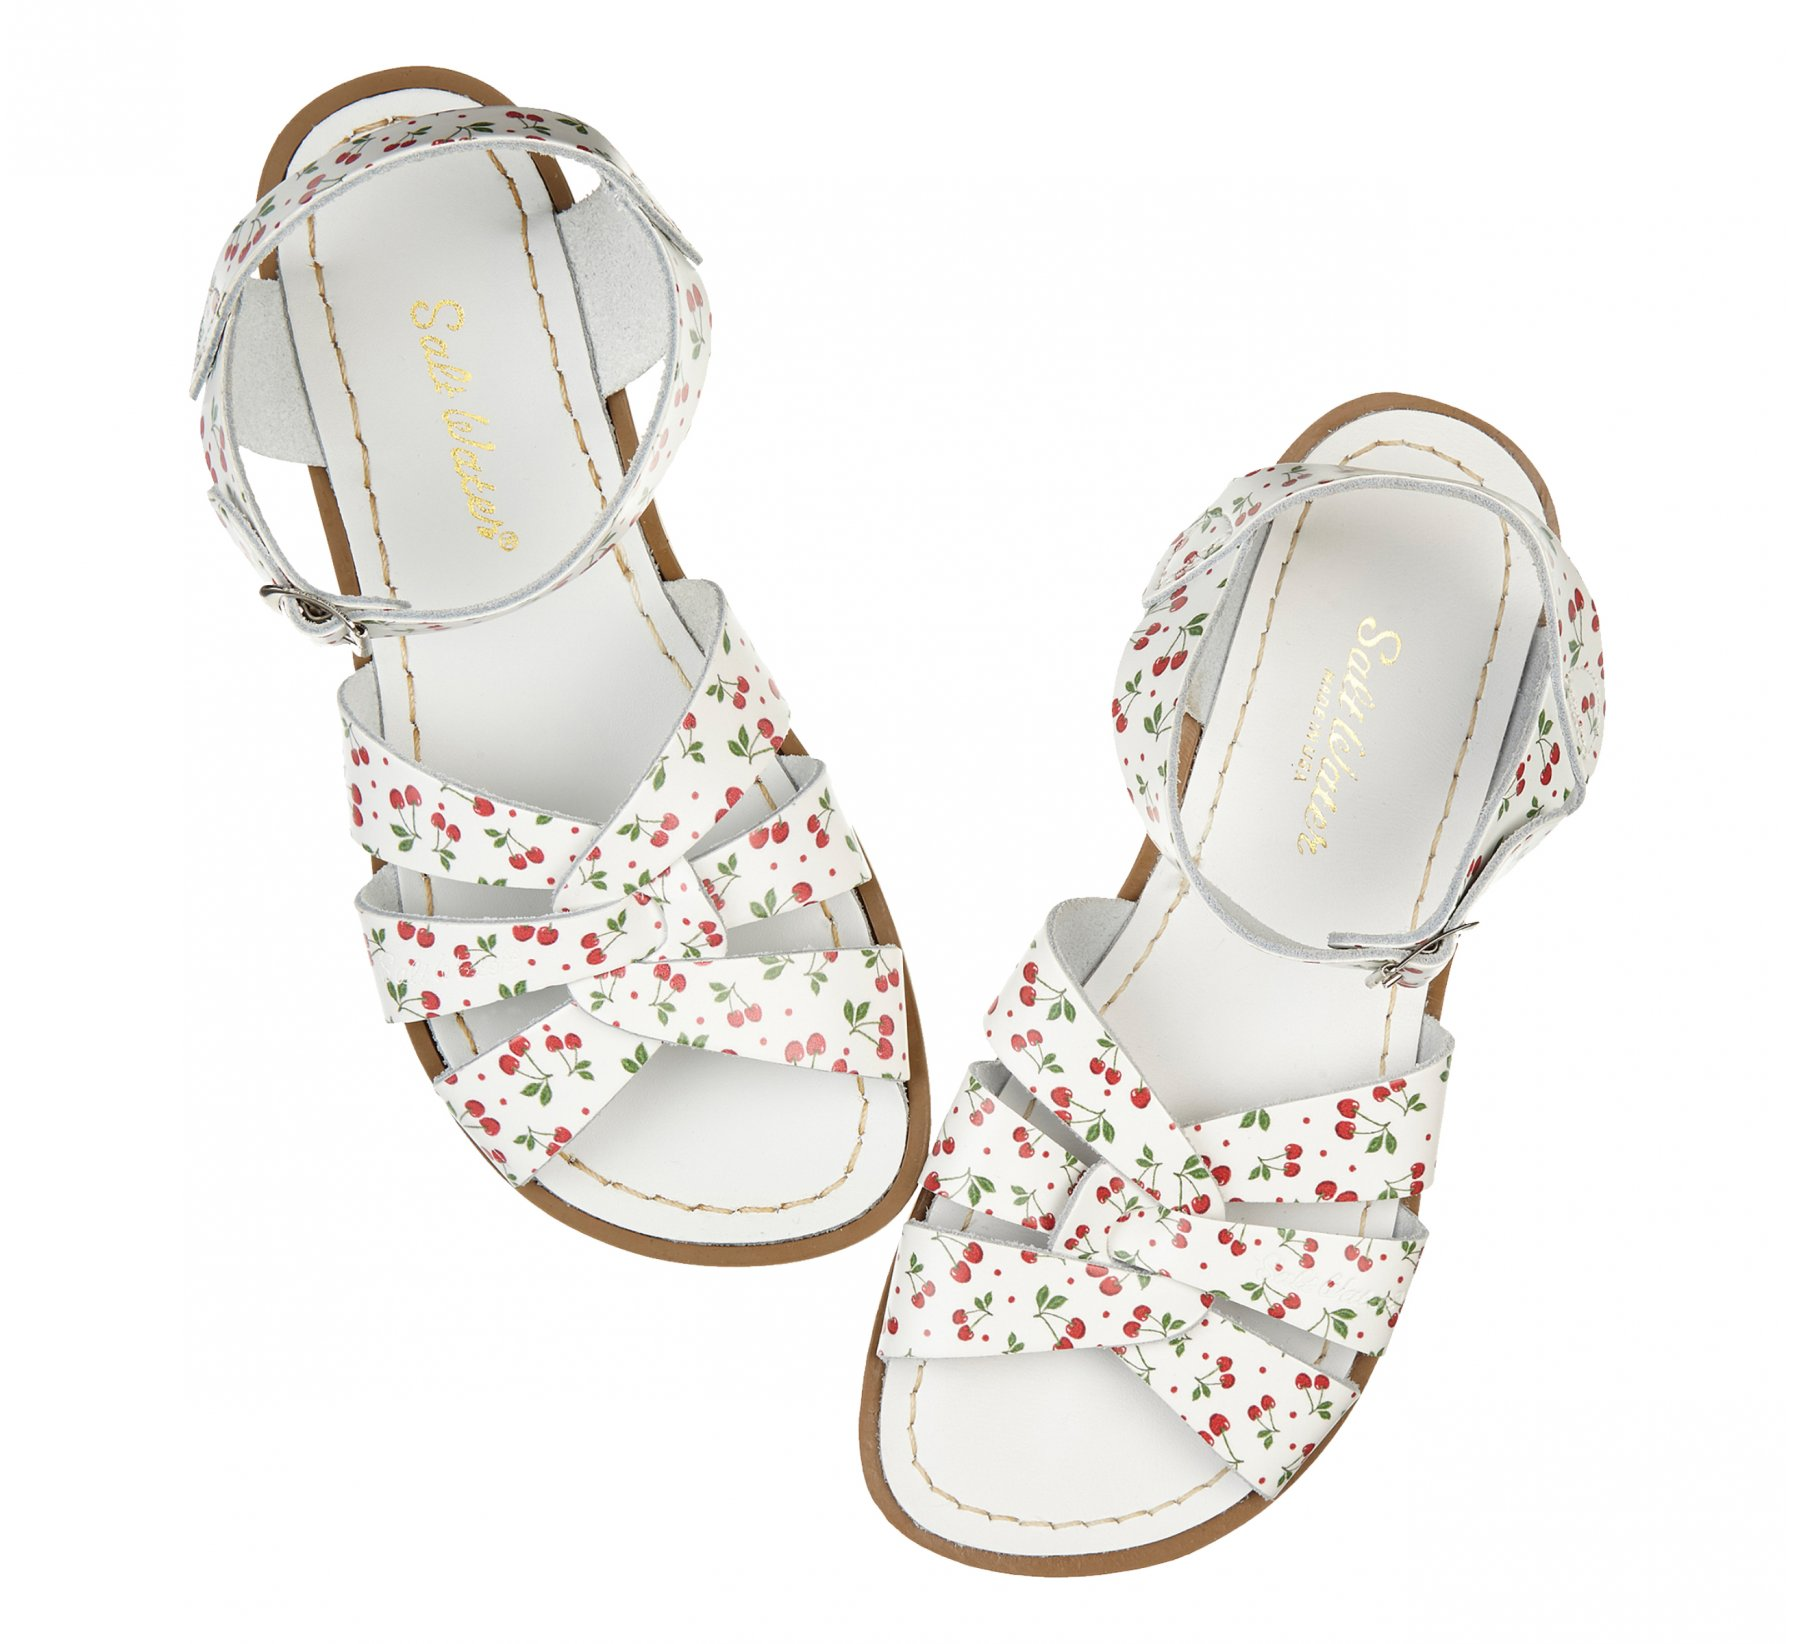 Original Cerise - Salt Water Sandals